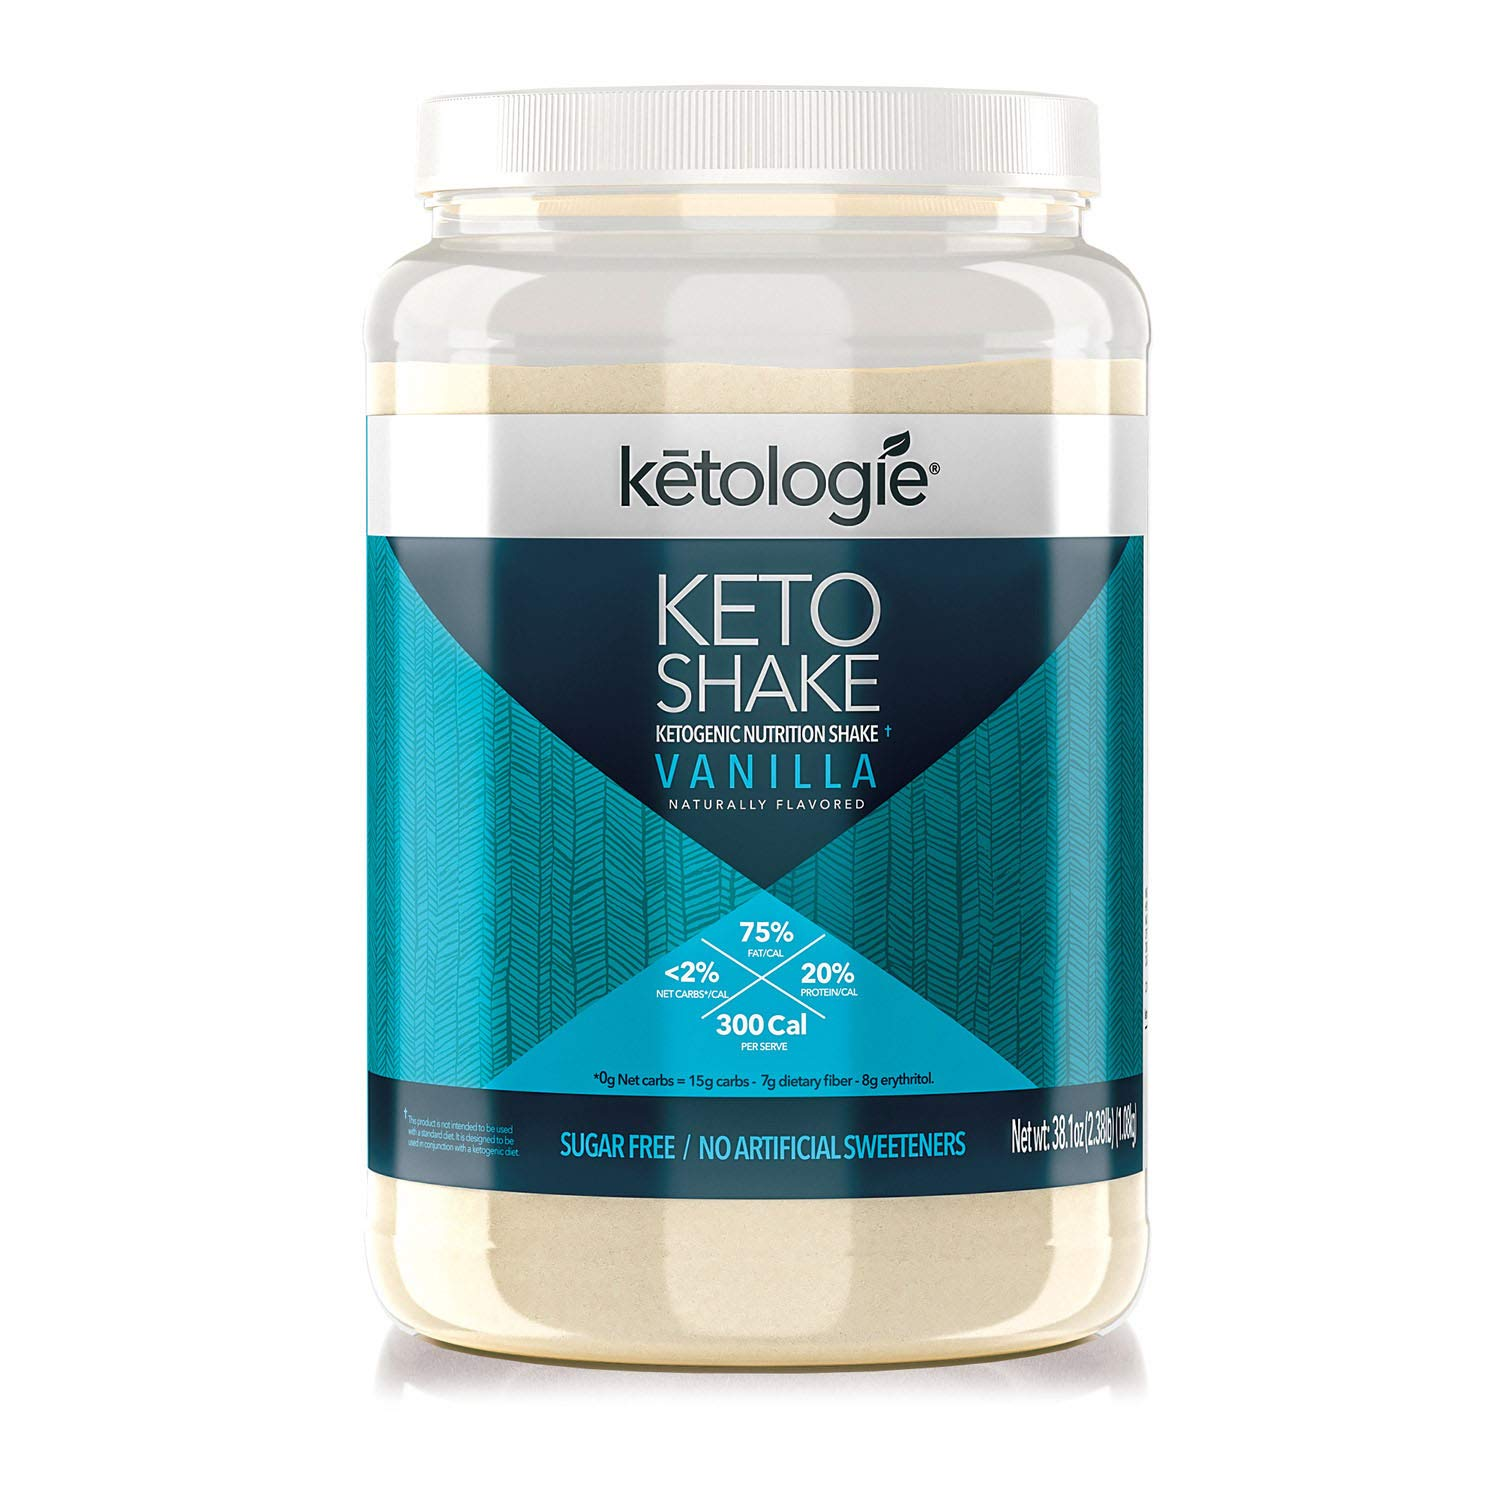 Ketologie Ultra Low Carb Protein Shake, High-Fat Keto Meal Replacement (Vanilla) by Ketologie